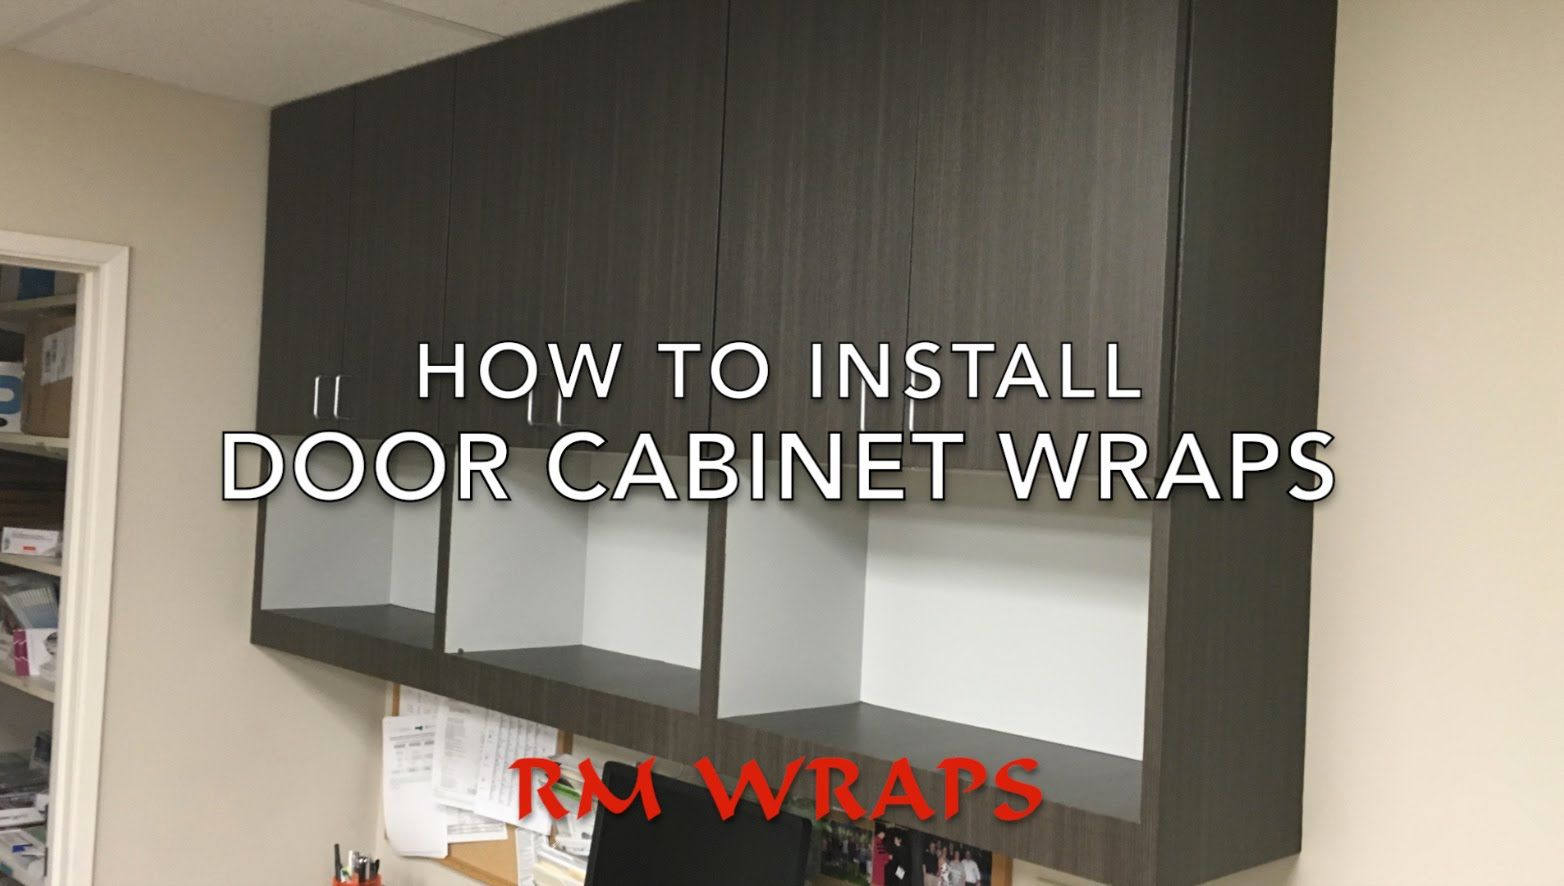 Wrapping A Cabinet Door With Di Noc Vinyl Rmwraps Com Kitchen